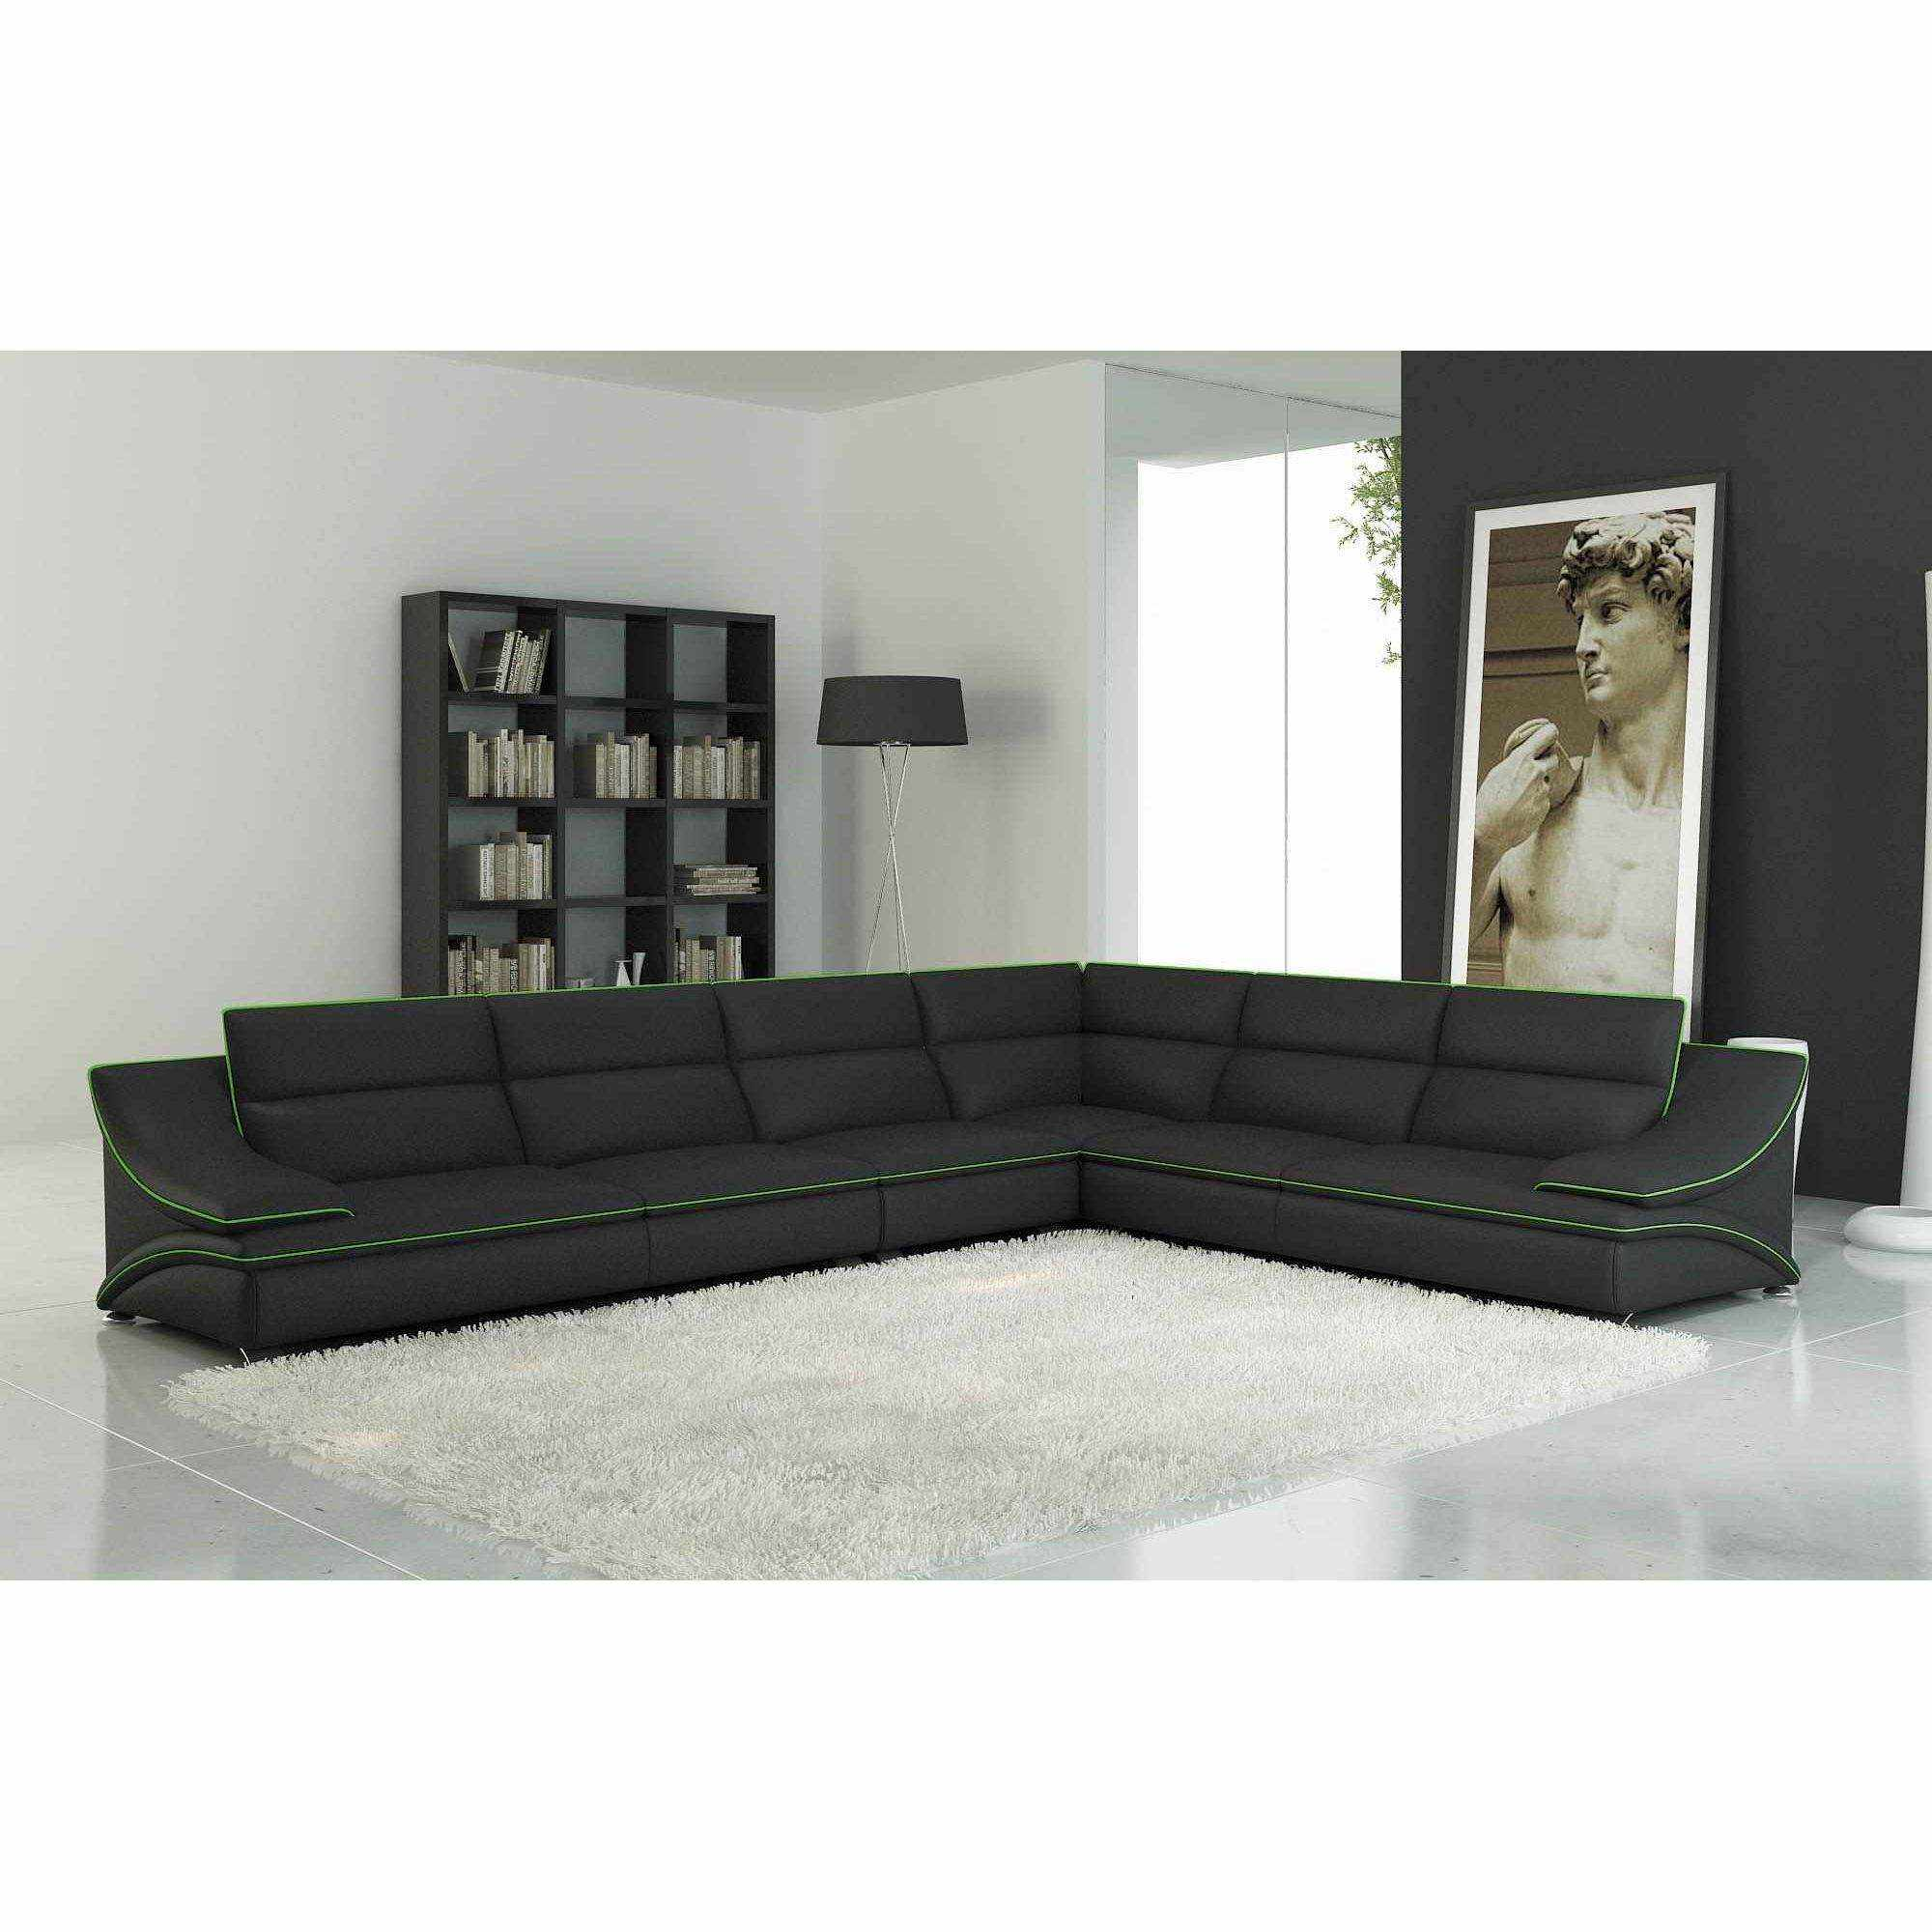 deco in paris 1 canape d angle cuir design noir et vert. Black Bedroom Furniture Sets. Home Design Ideas